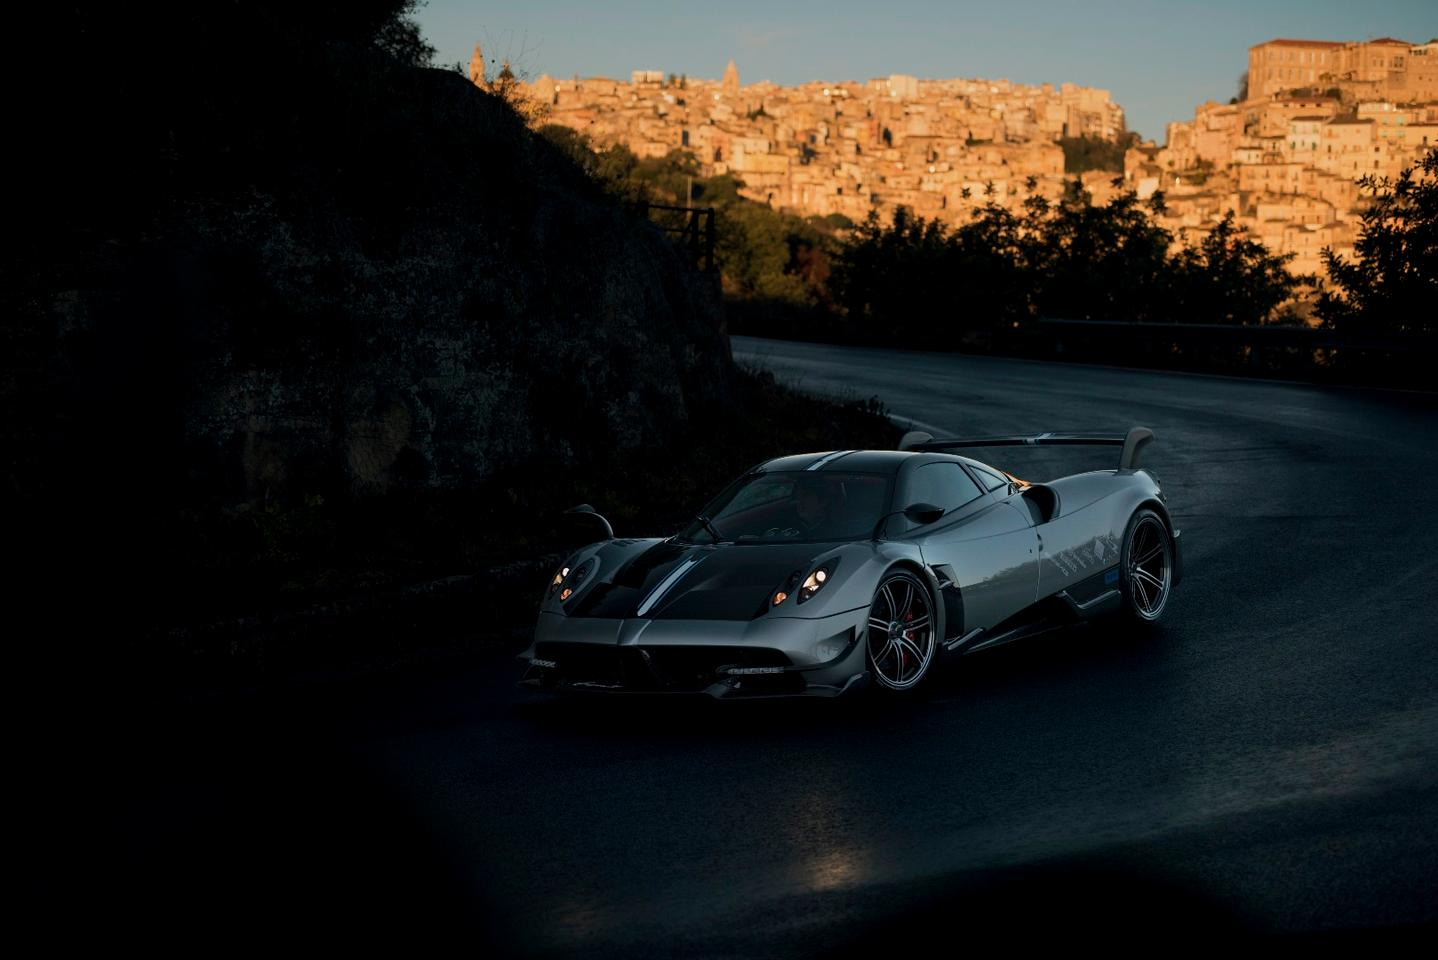 The Huayra gets a thorough redesign